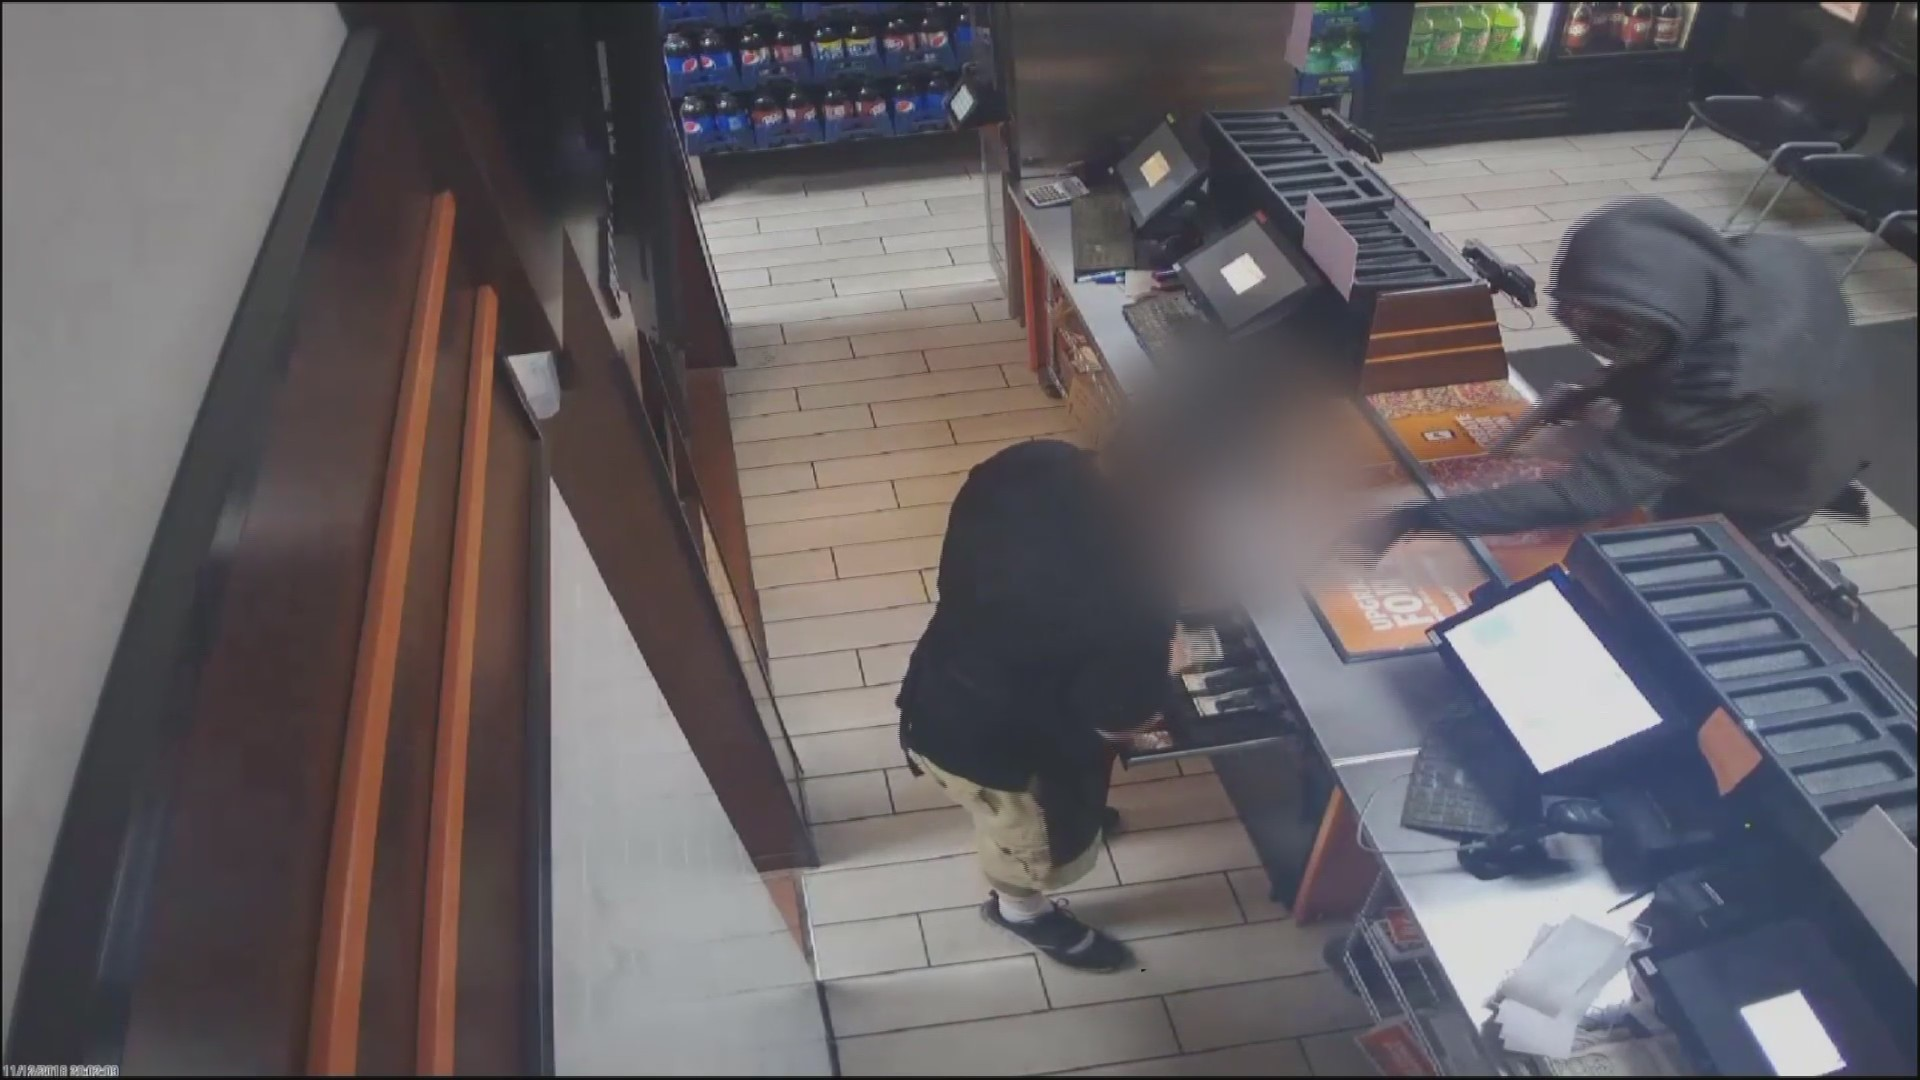 Armed_Robbery_at_Little_Caesars_0_20181116023650